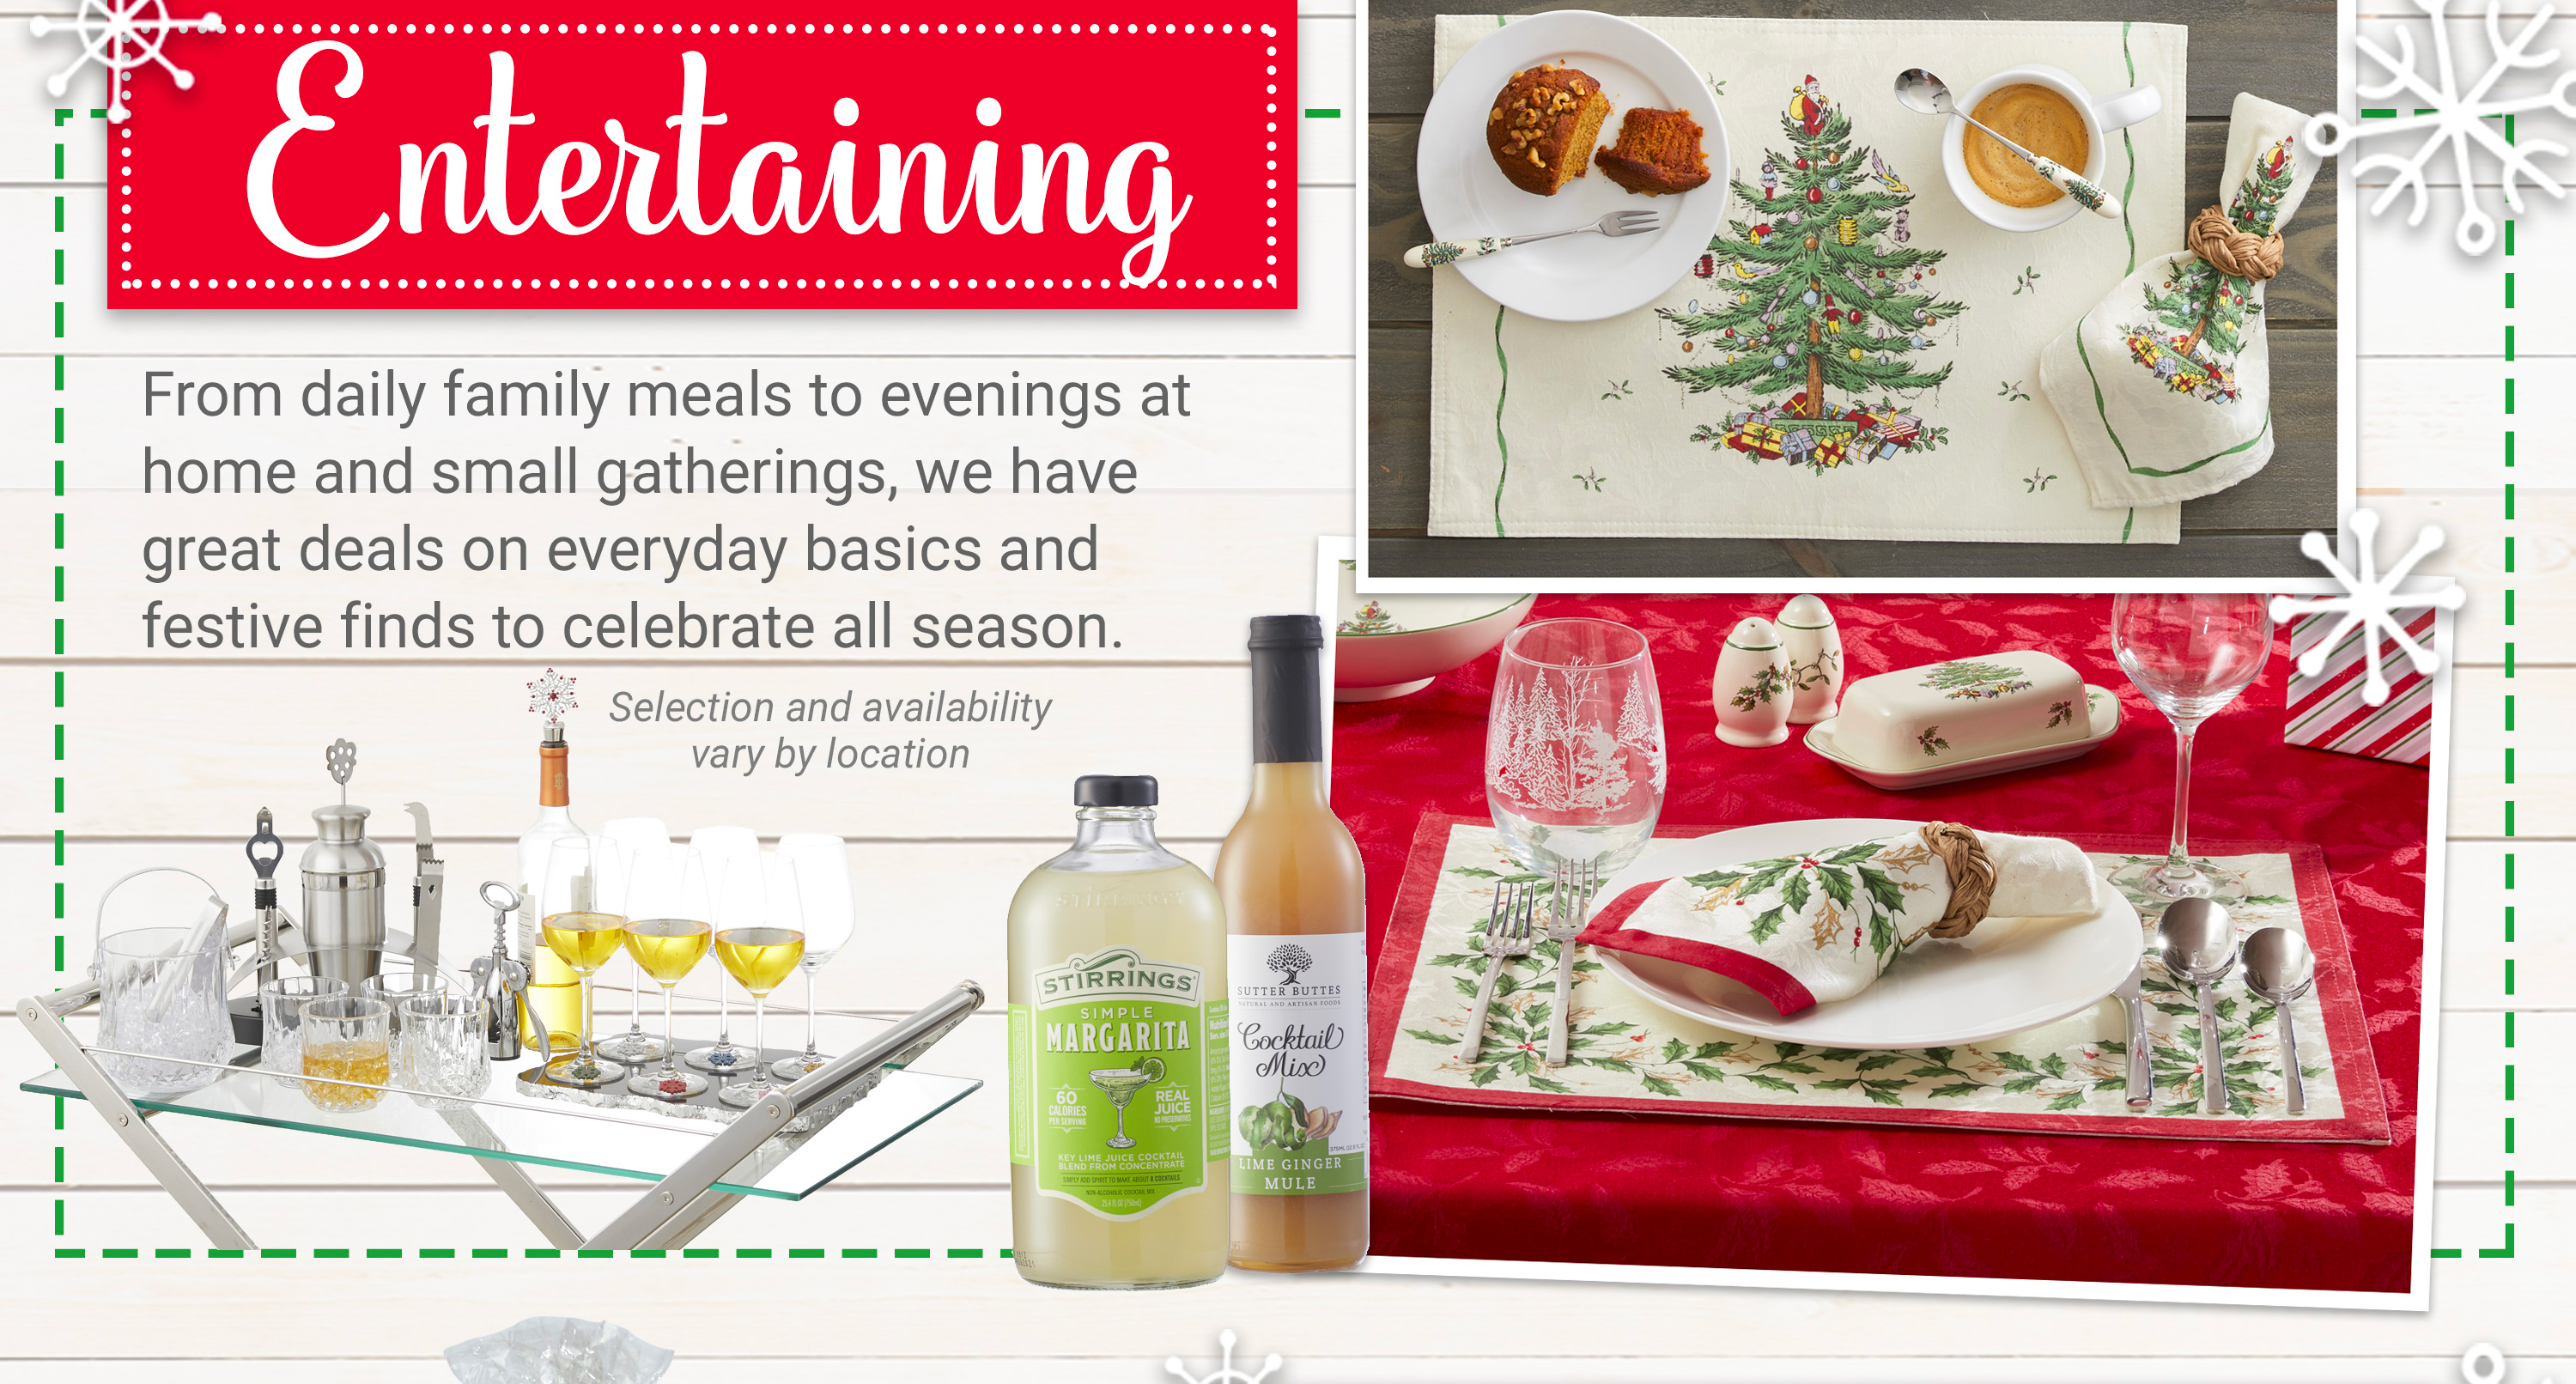 Entertaining - We have great deals on everyday basics and festive finds to celebrate all season.